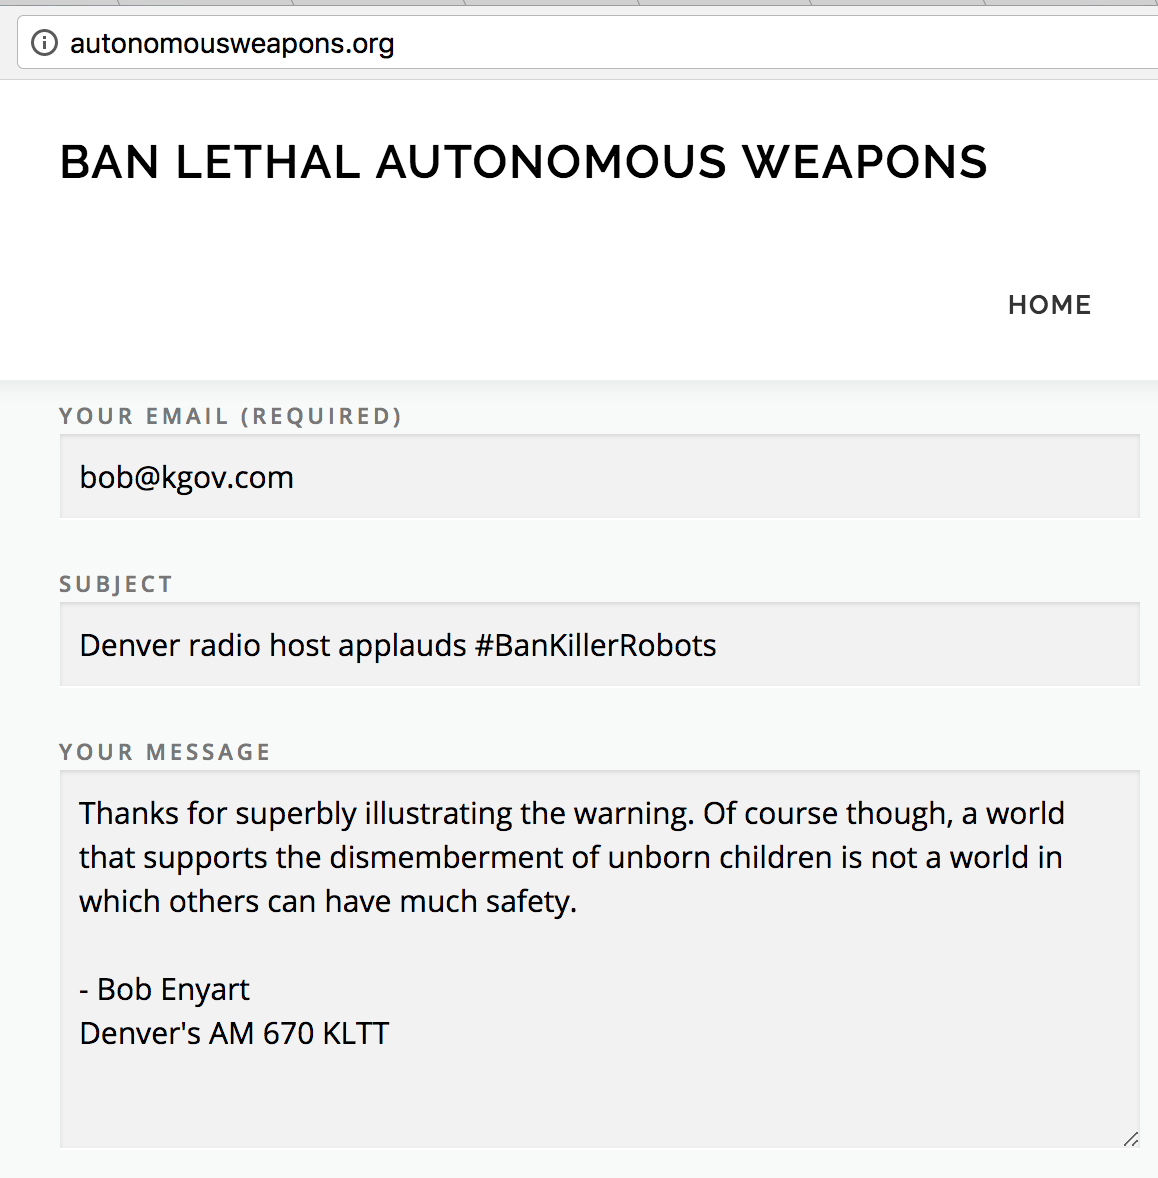 Enyart's comment at AutonomousWeapons.org supporting a ban and decrying the dismemberment of unborn children...